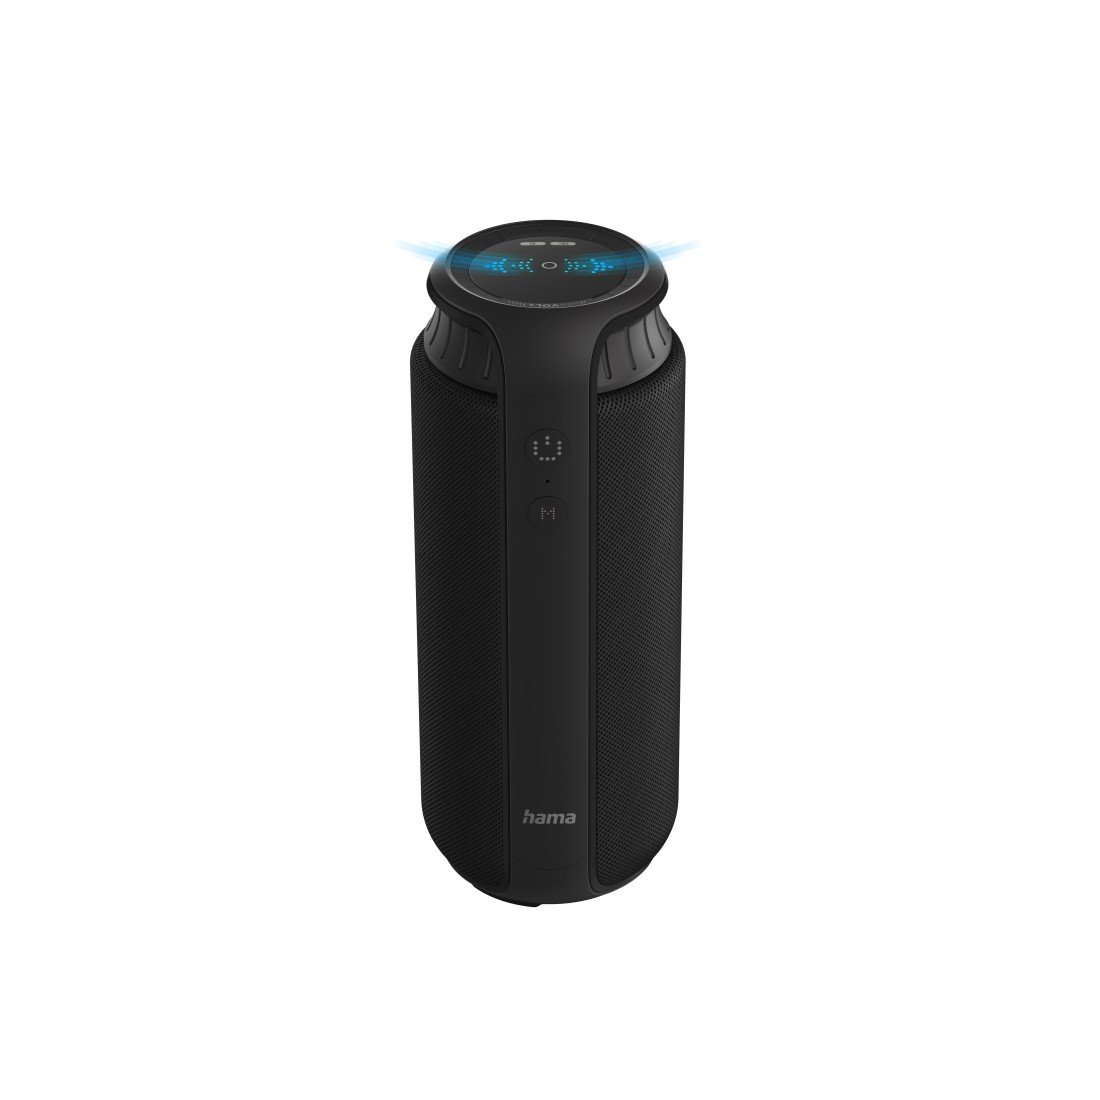 "awx High-Res Appliance - Hama, Bluetooth® ""Pipe 2.0"" Loudspeaker, Waterproof, 24 W, black"